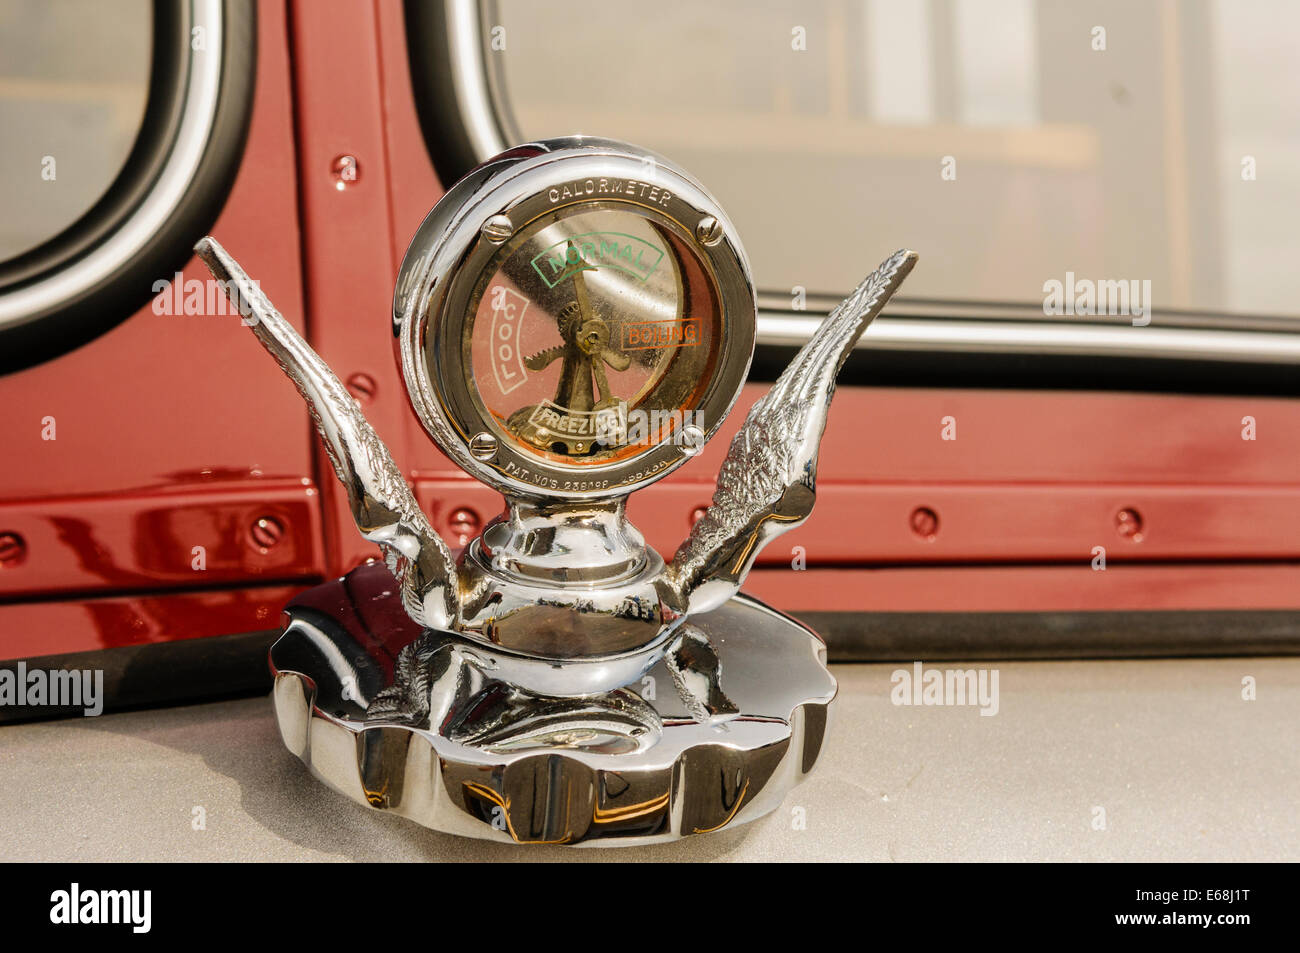 Engine temperature gauge on the front of an old lorry - Stock Image